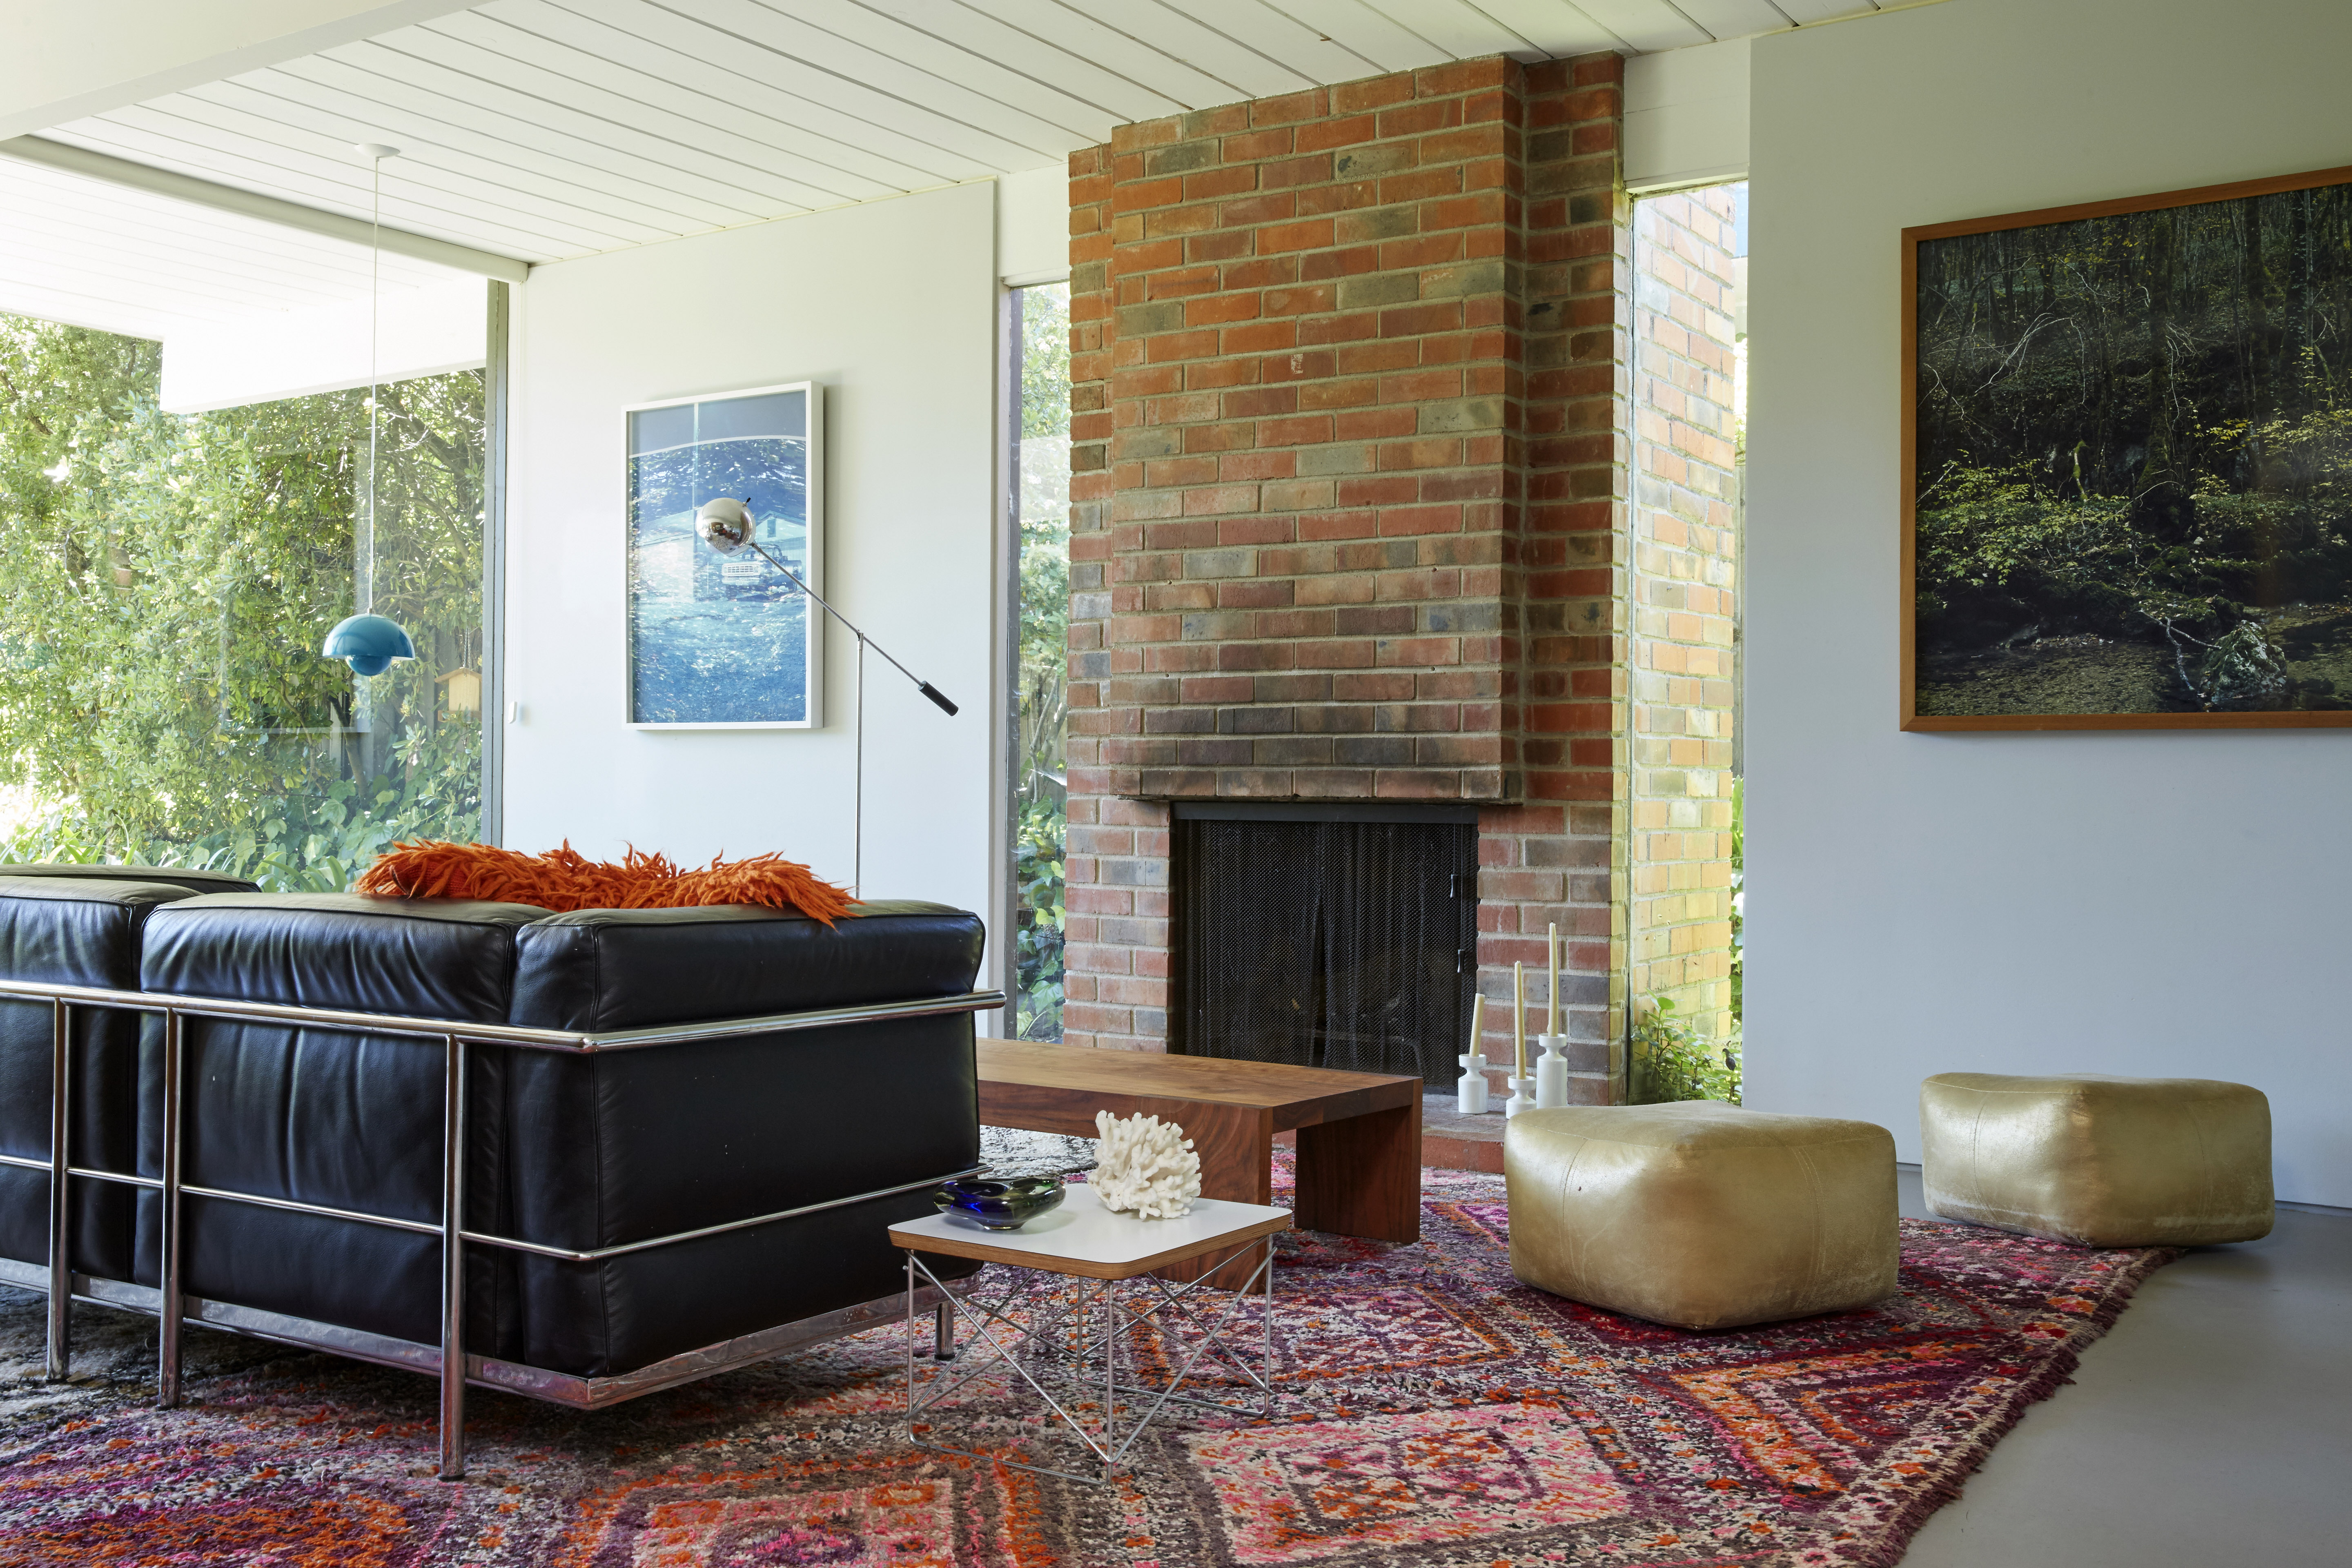 A Classic Eichler Home Steps Into the 21st Century - Curbed